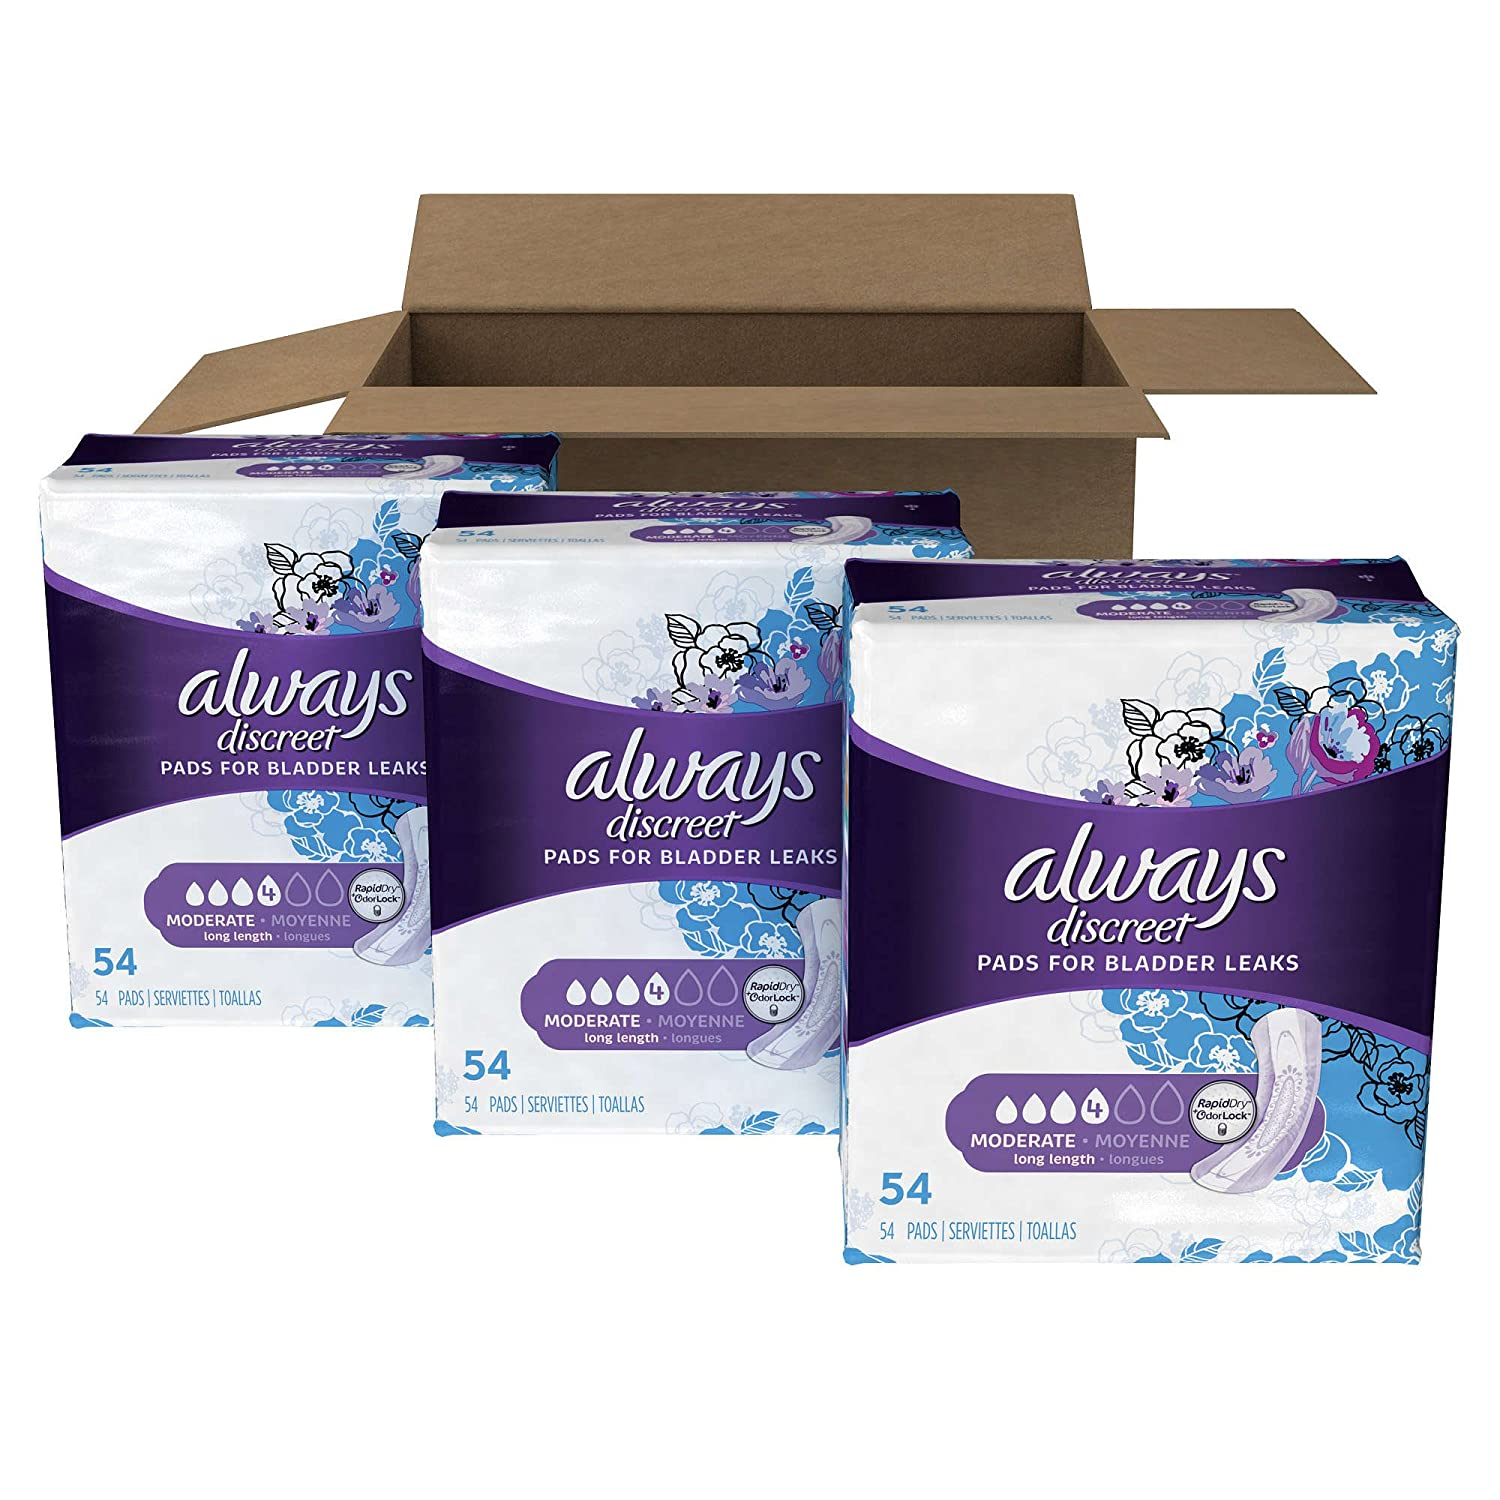 Amazon.com: Always Discreet Incontinence Pads, Moderate, Count 162 Size Long - 3 Set: Health & Personal Care